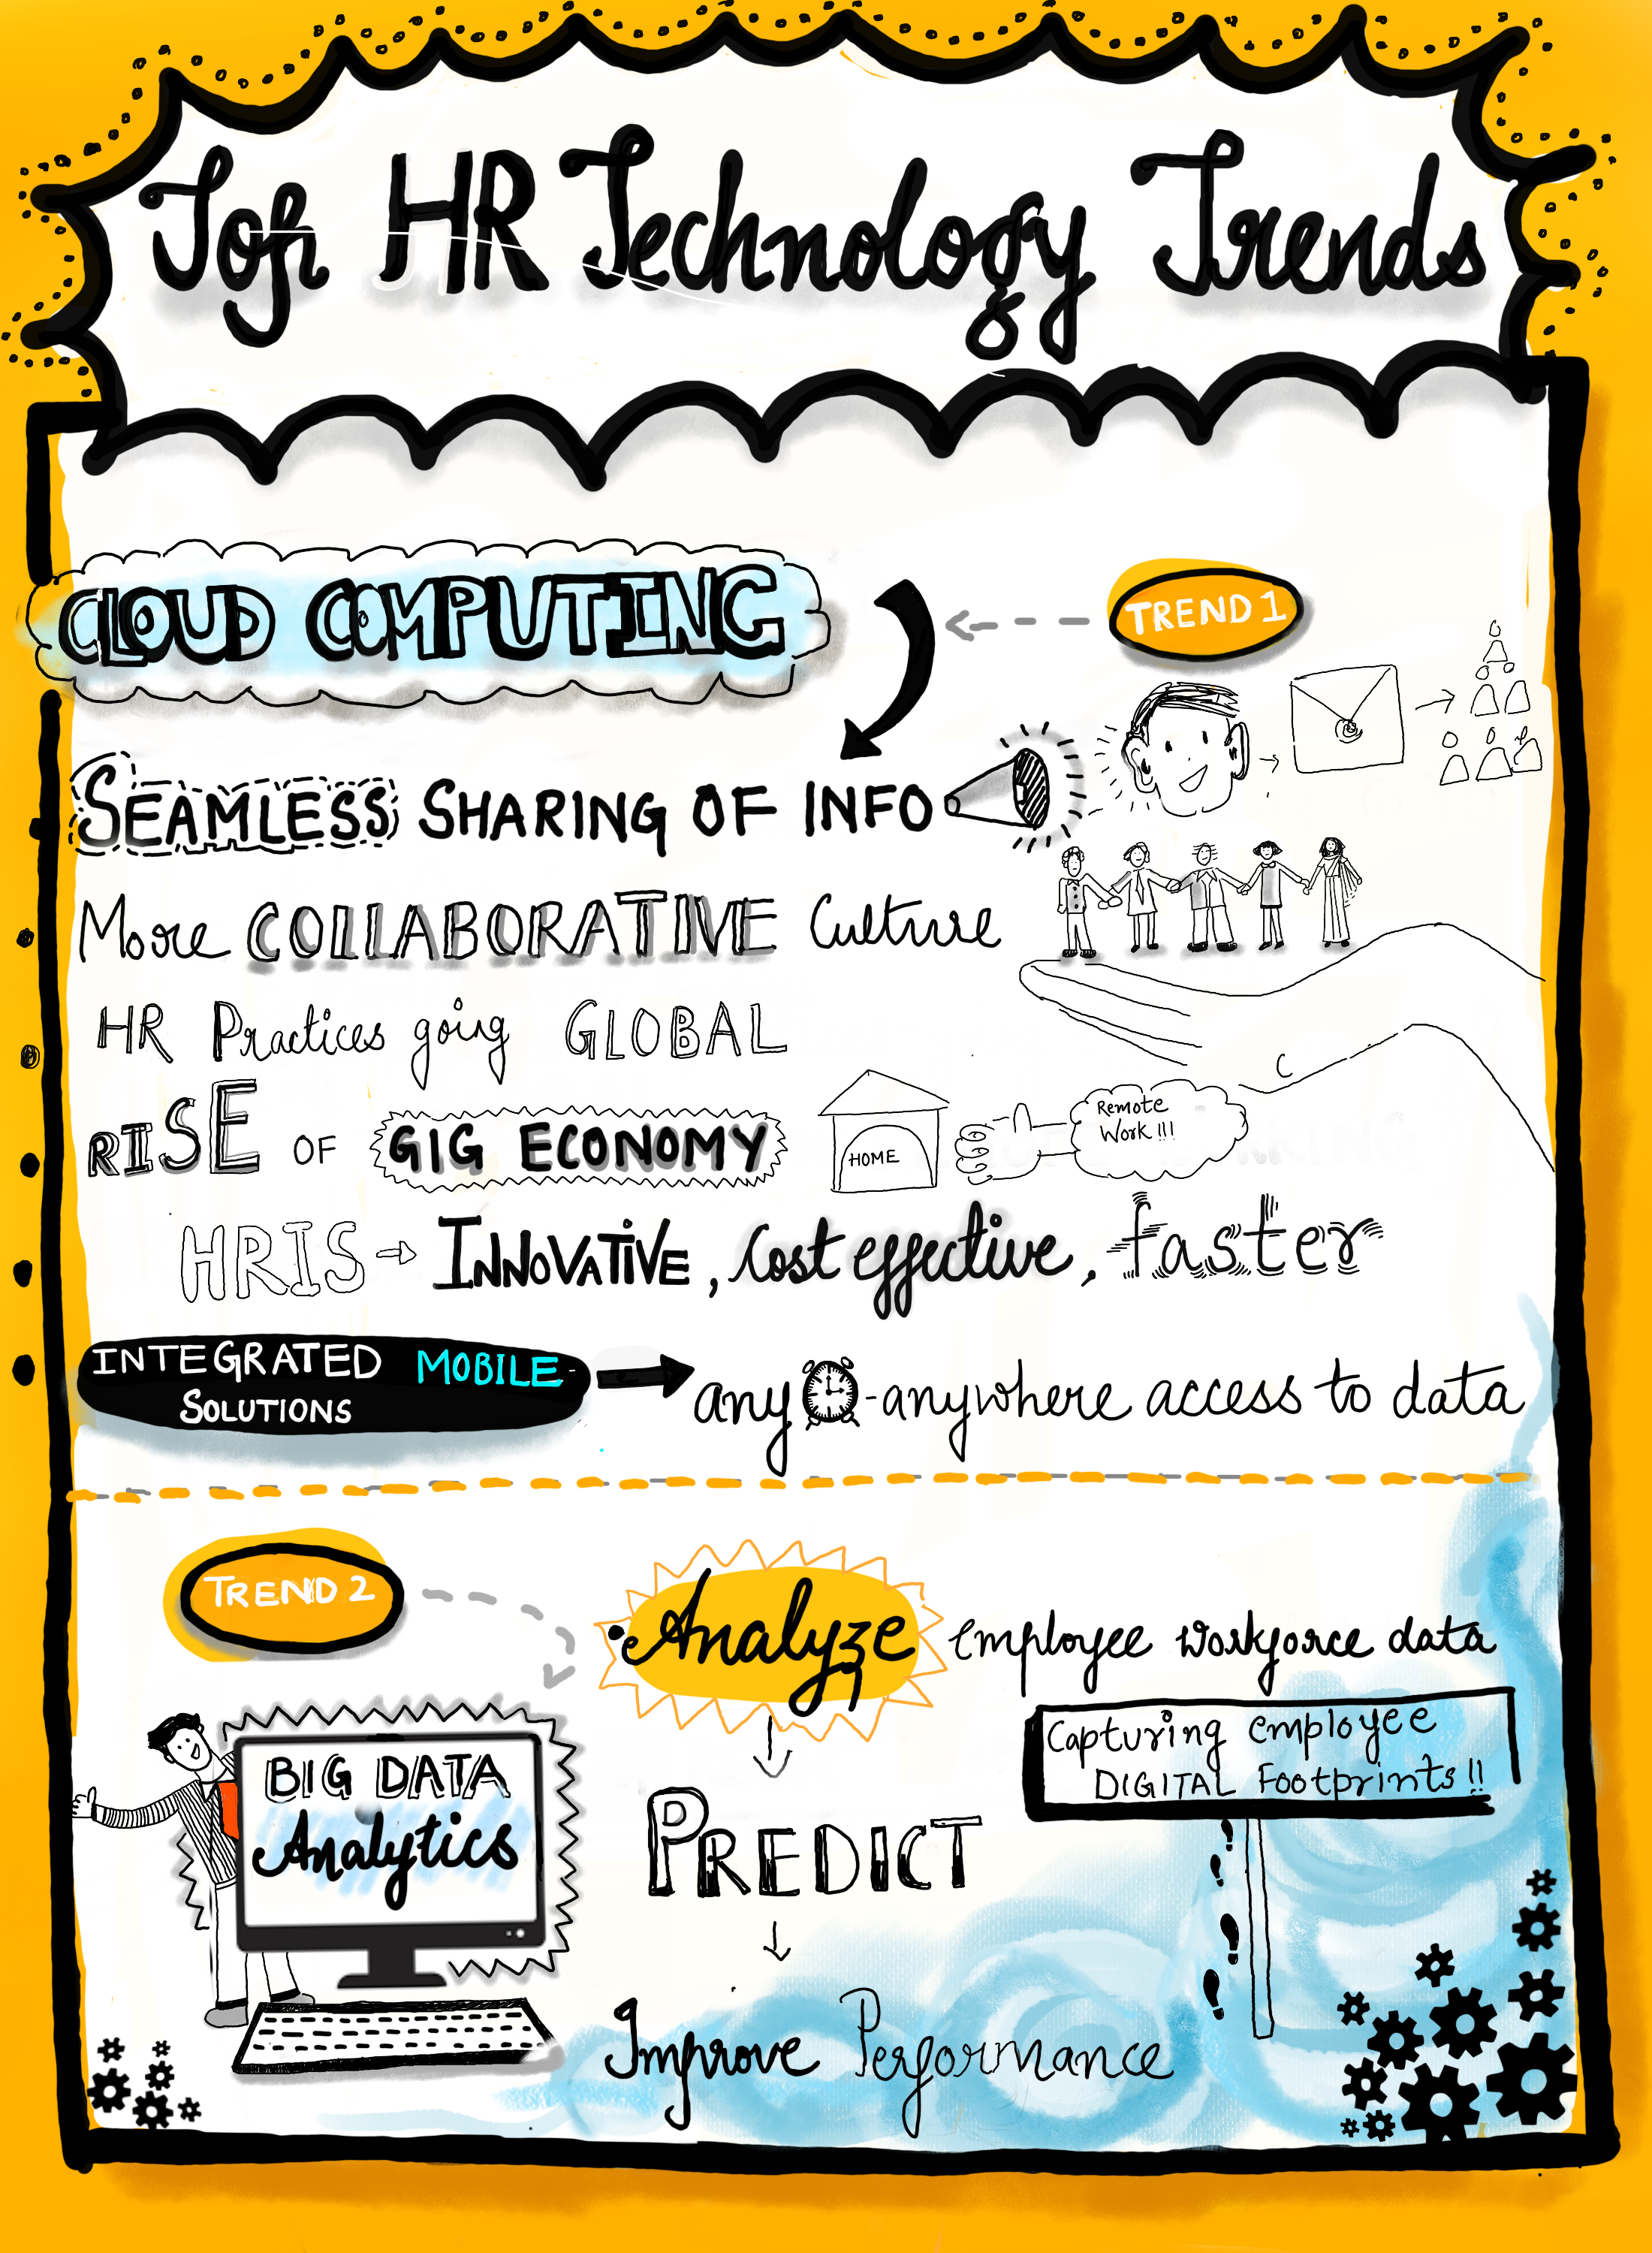 article  sketchnote  top hr technology trends  u2014 people matters